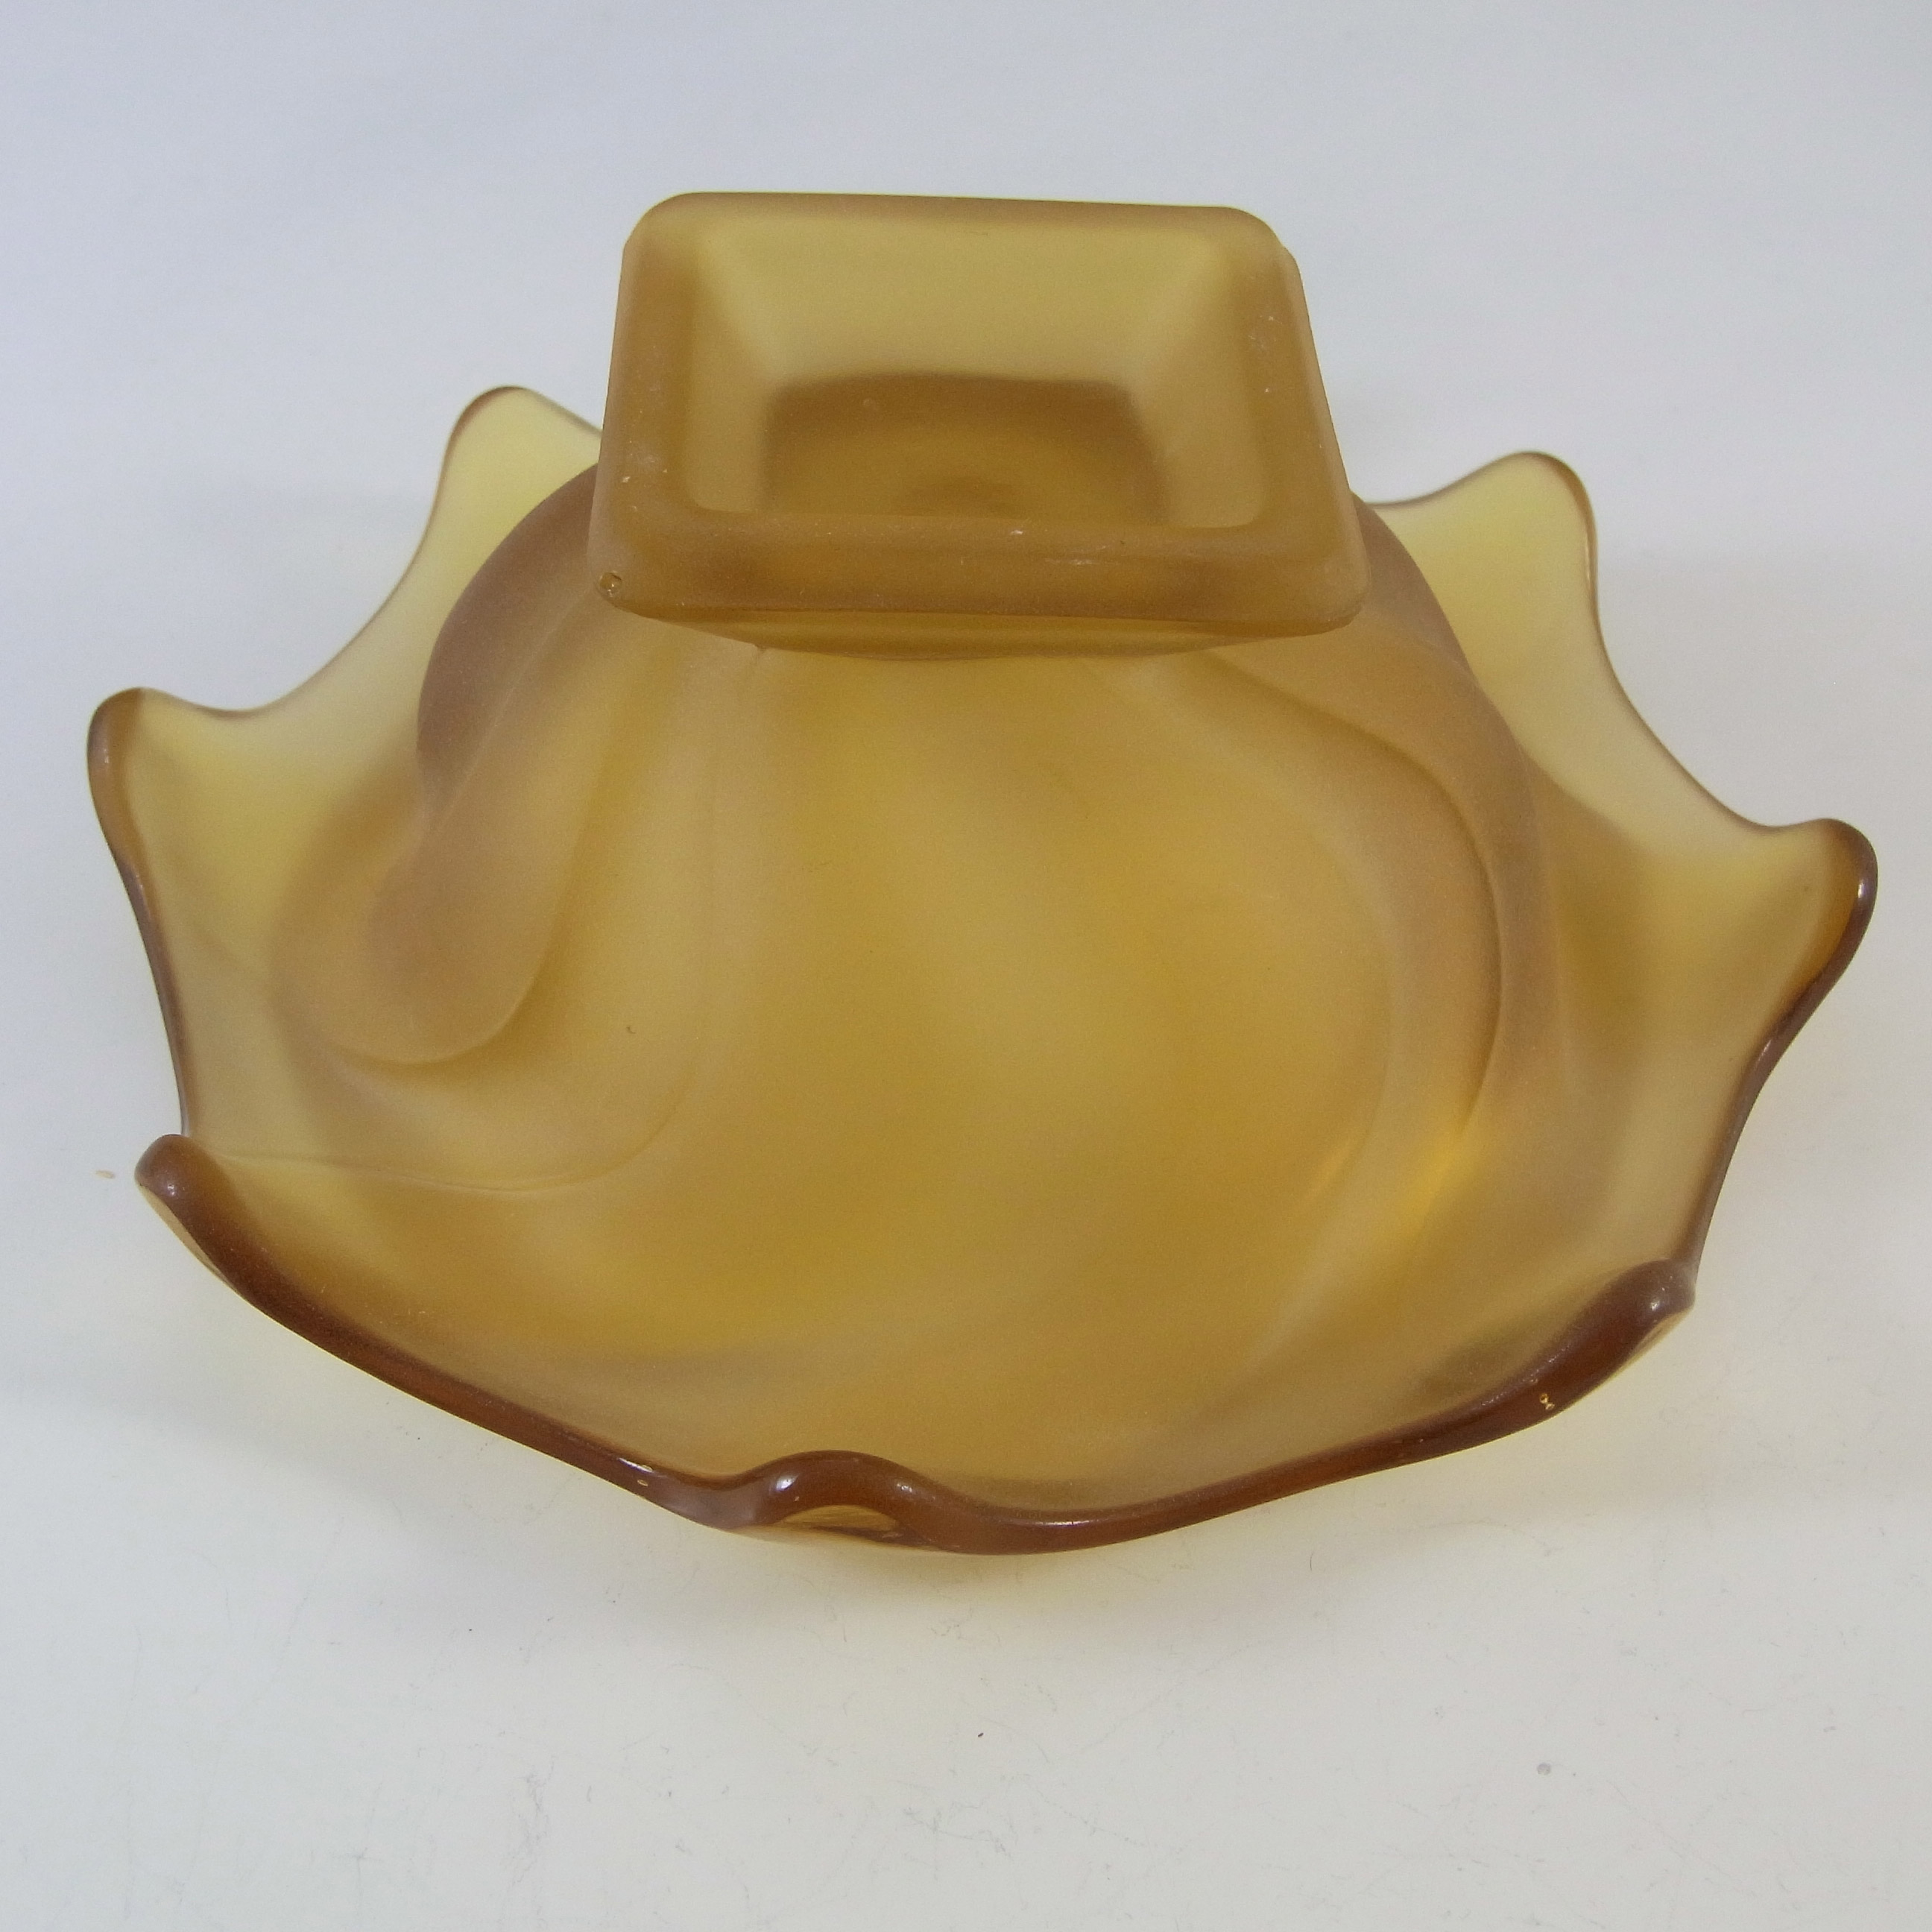 Bagley #3061 Art Deco Frosted Amber Glass 'Equinox' Posy Bowl - Click Image to Close